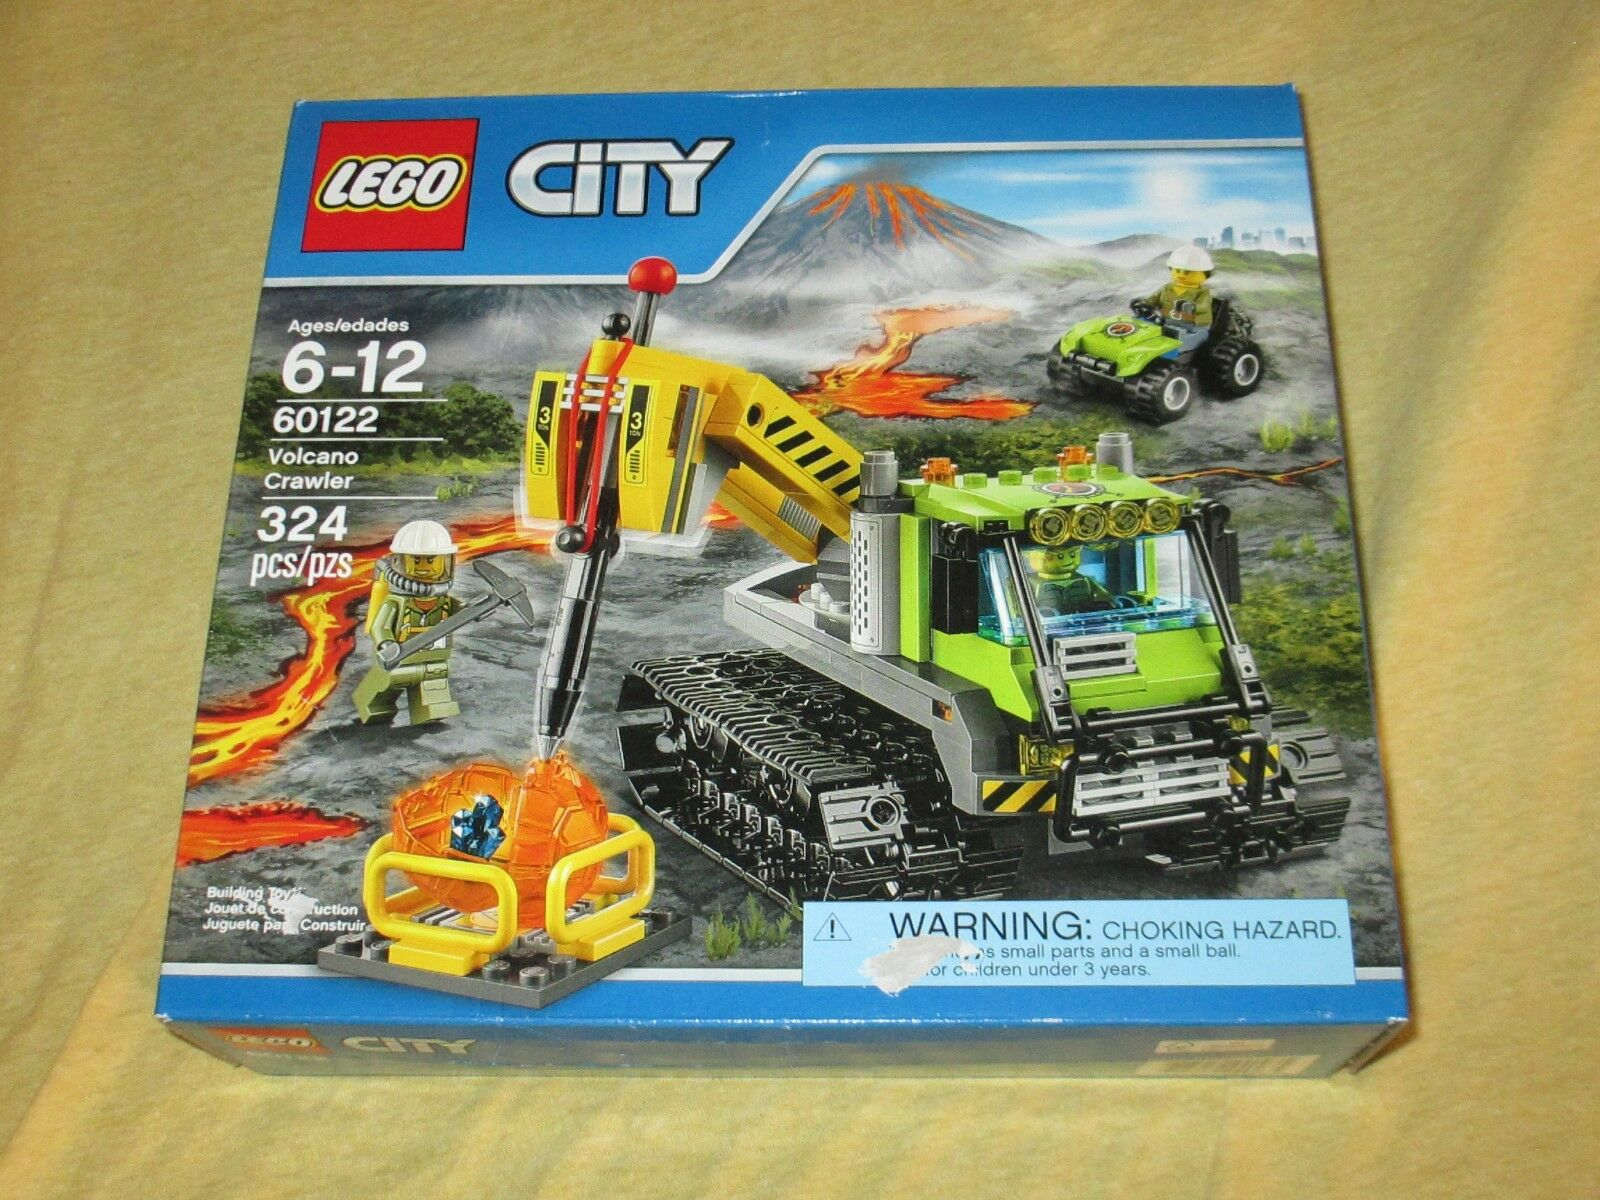 Lego Lego Lego City 324 Pieces Volcano Crawler 60122 – New 3f1bb0